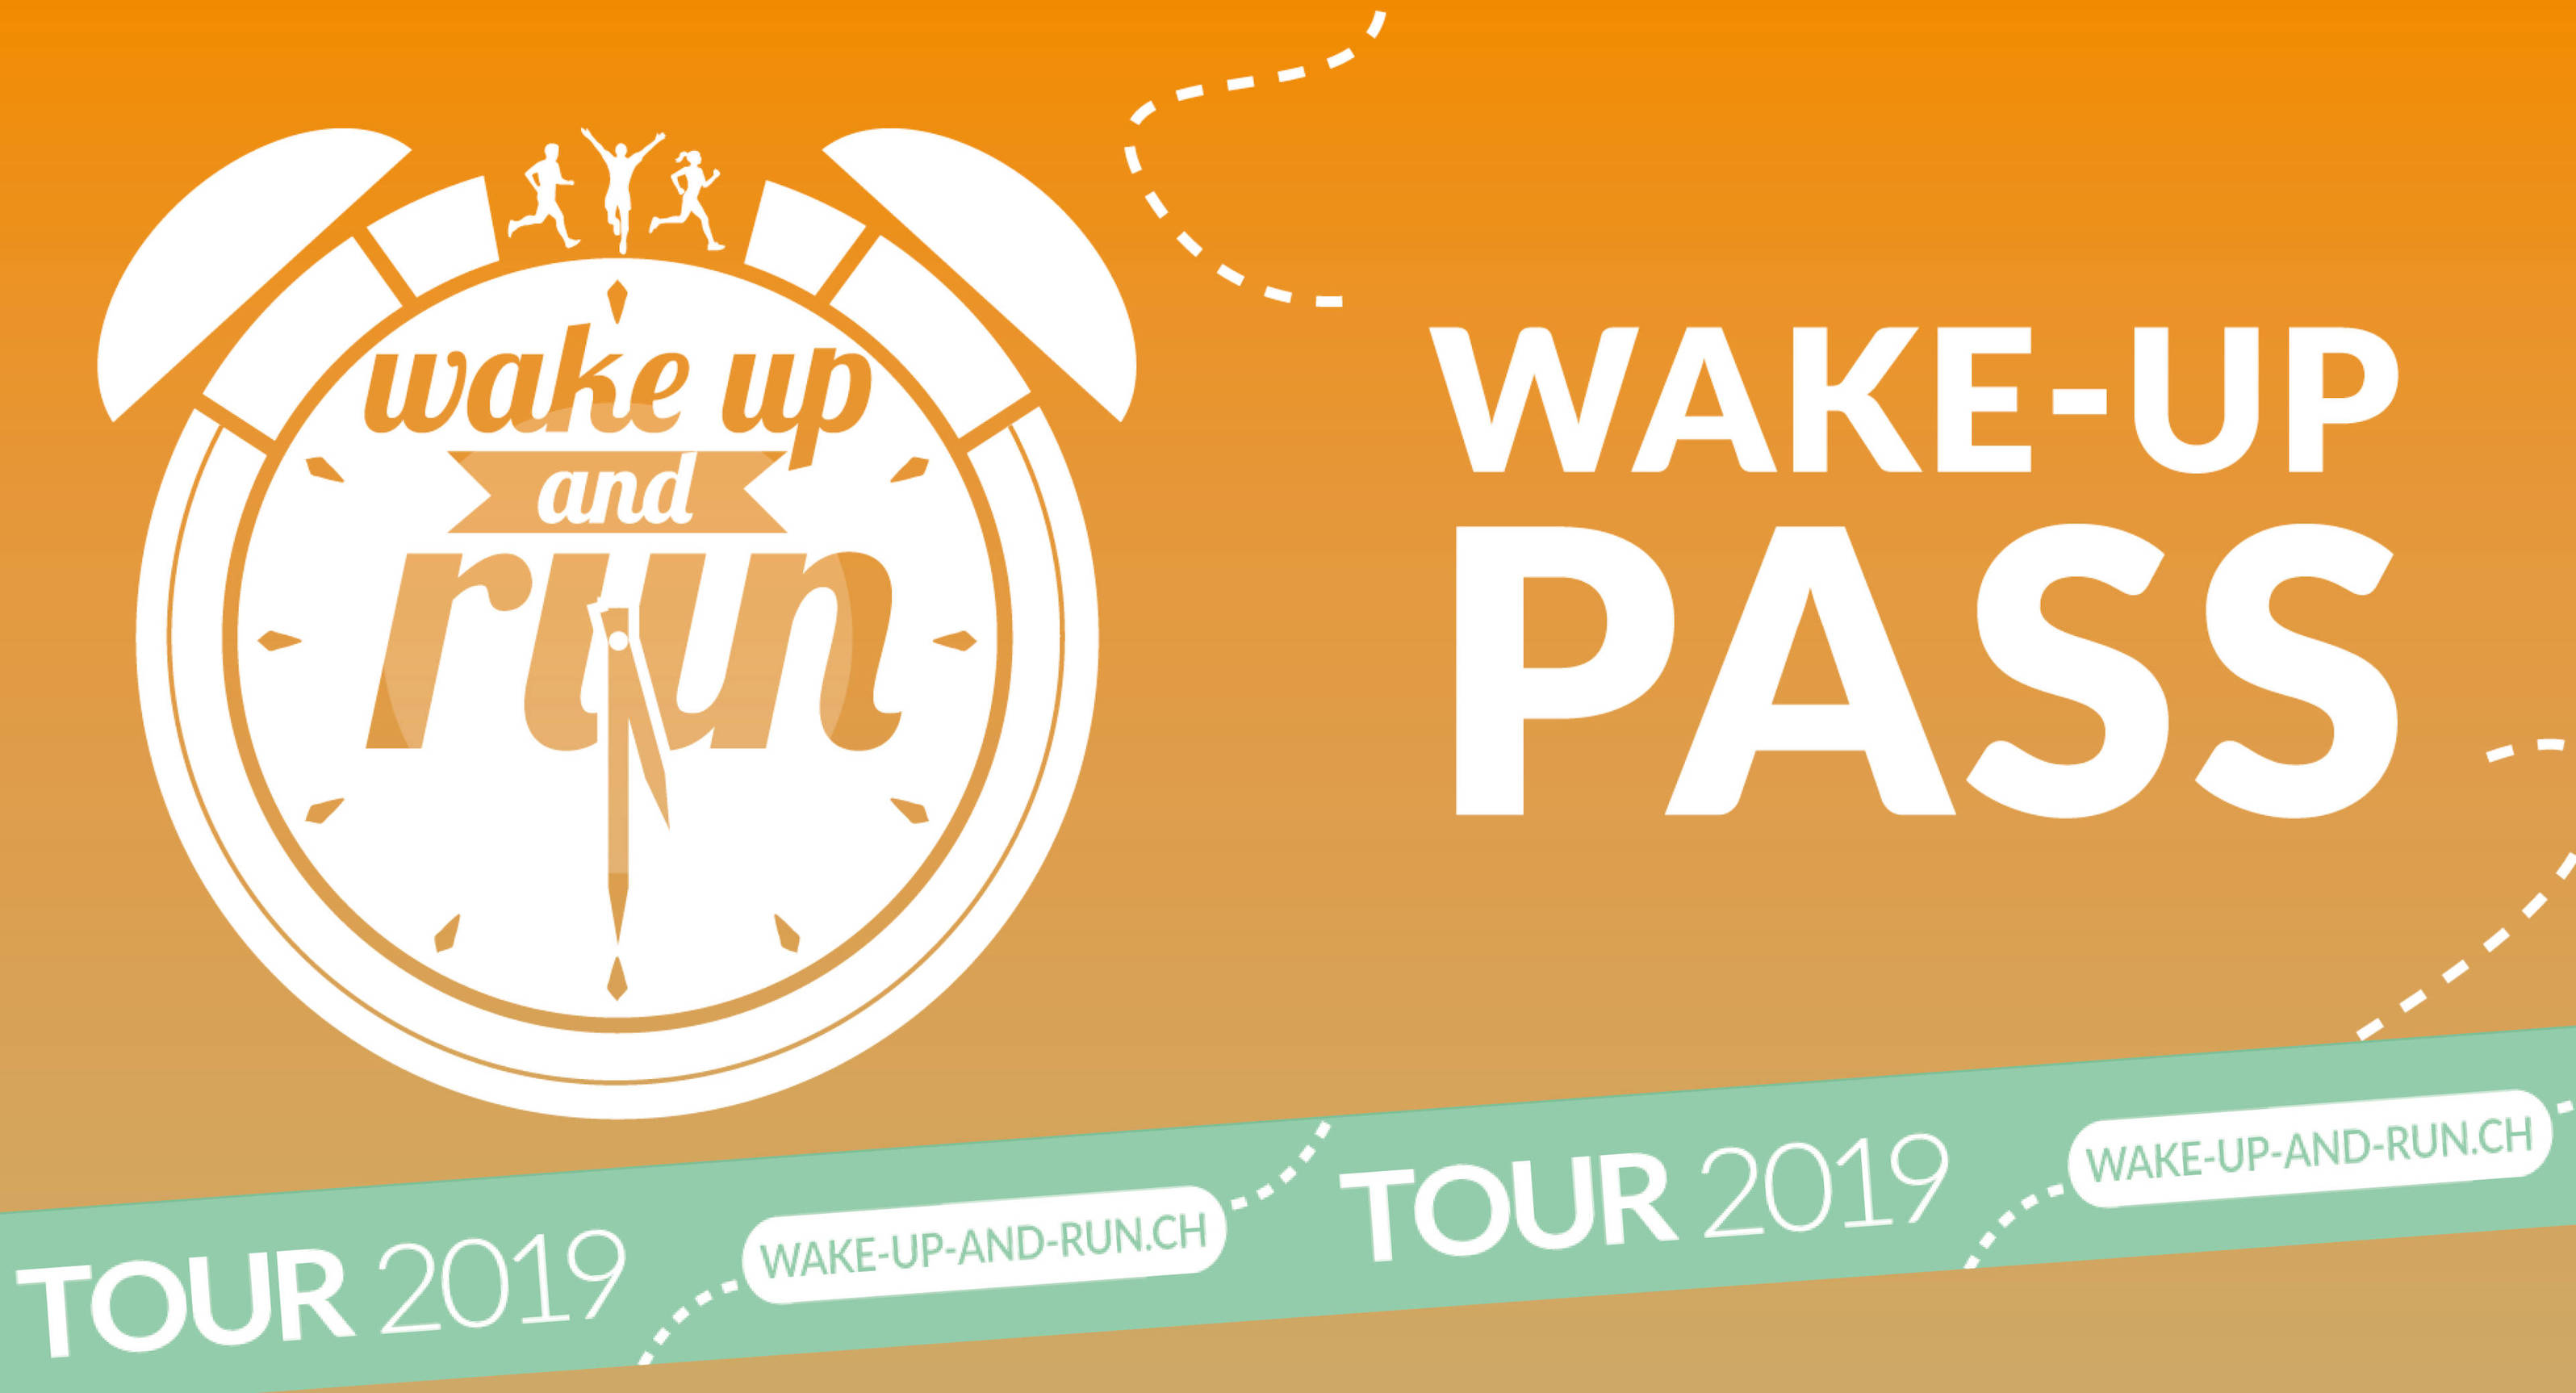 Concours WAKE UP PASS DELEMONT